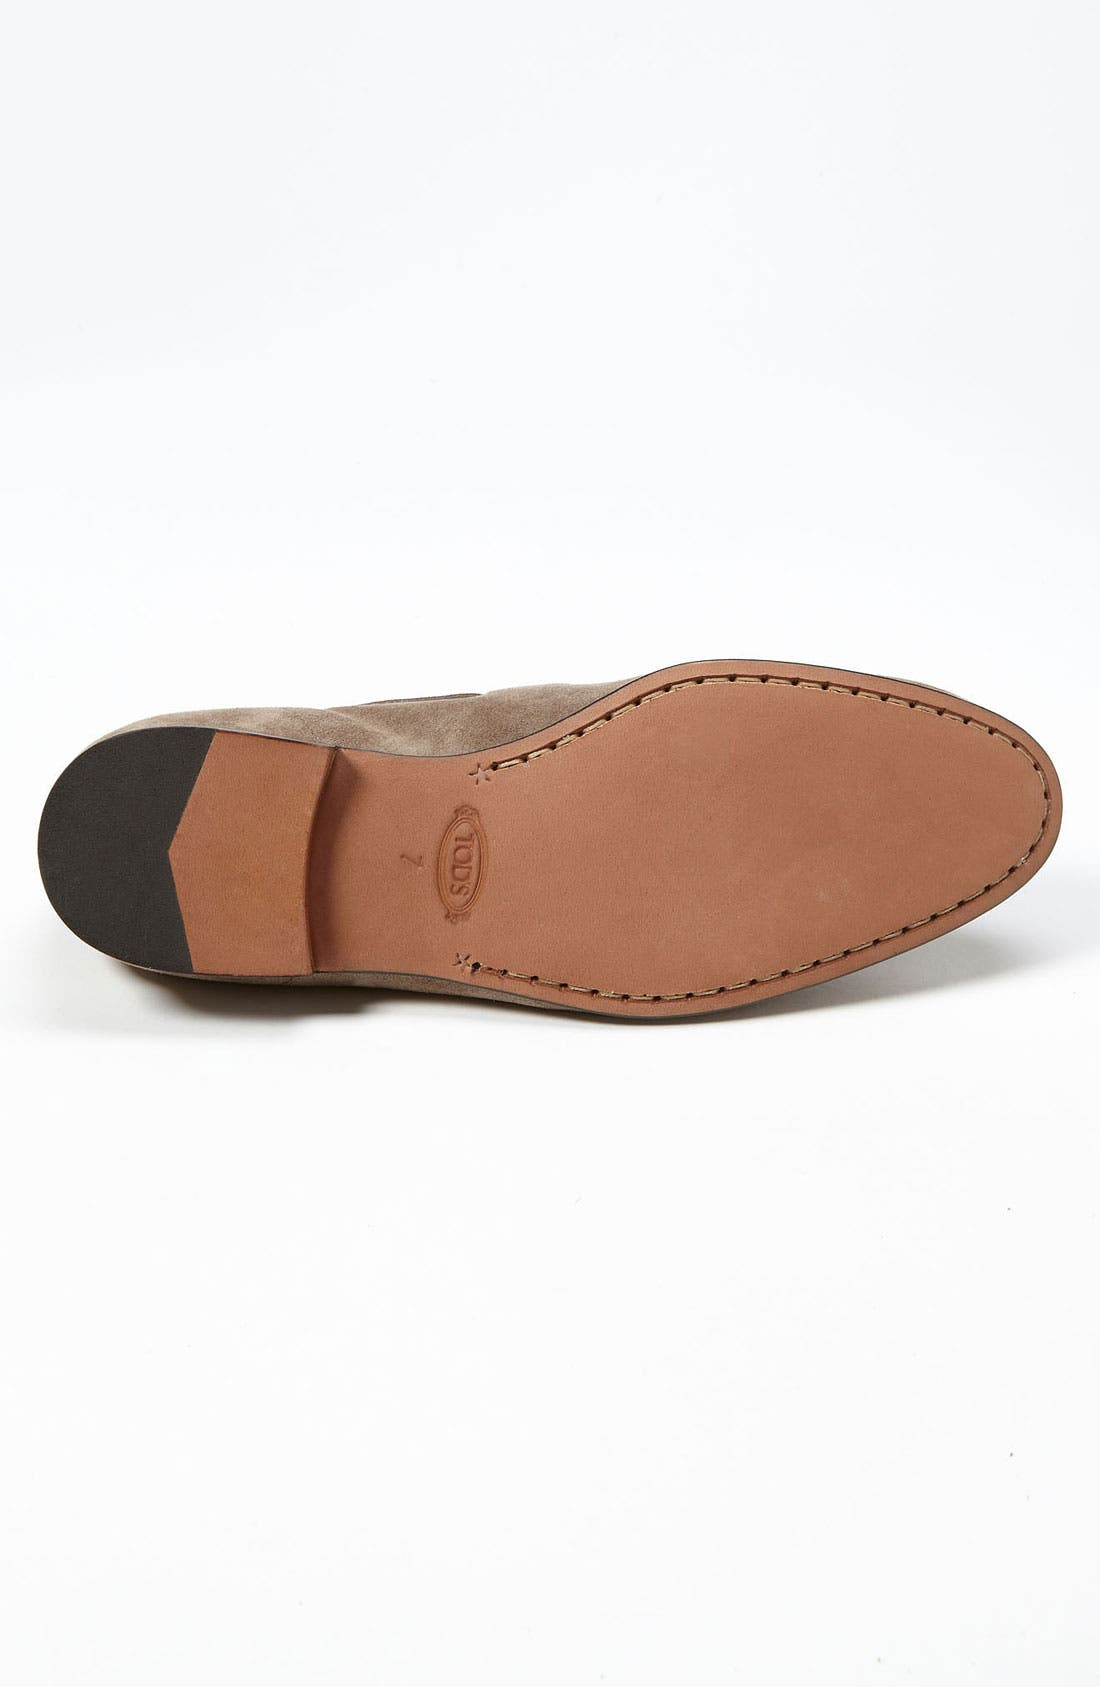 Suede Loafer,                             Alternate thumbnail 2, color,                             249